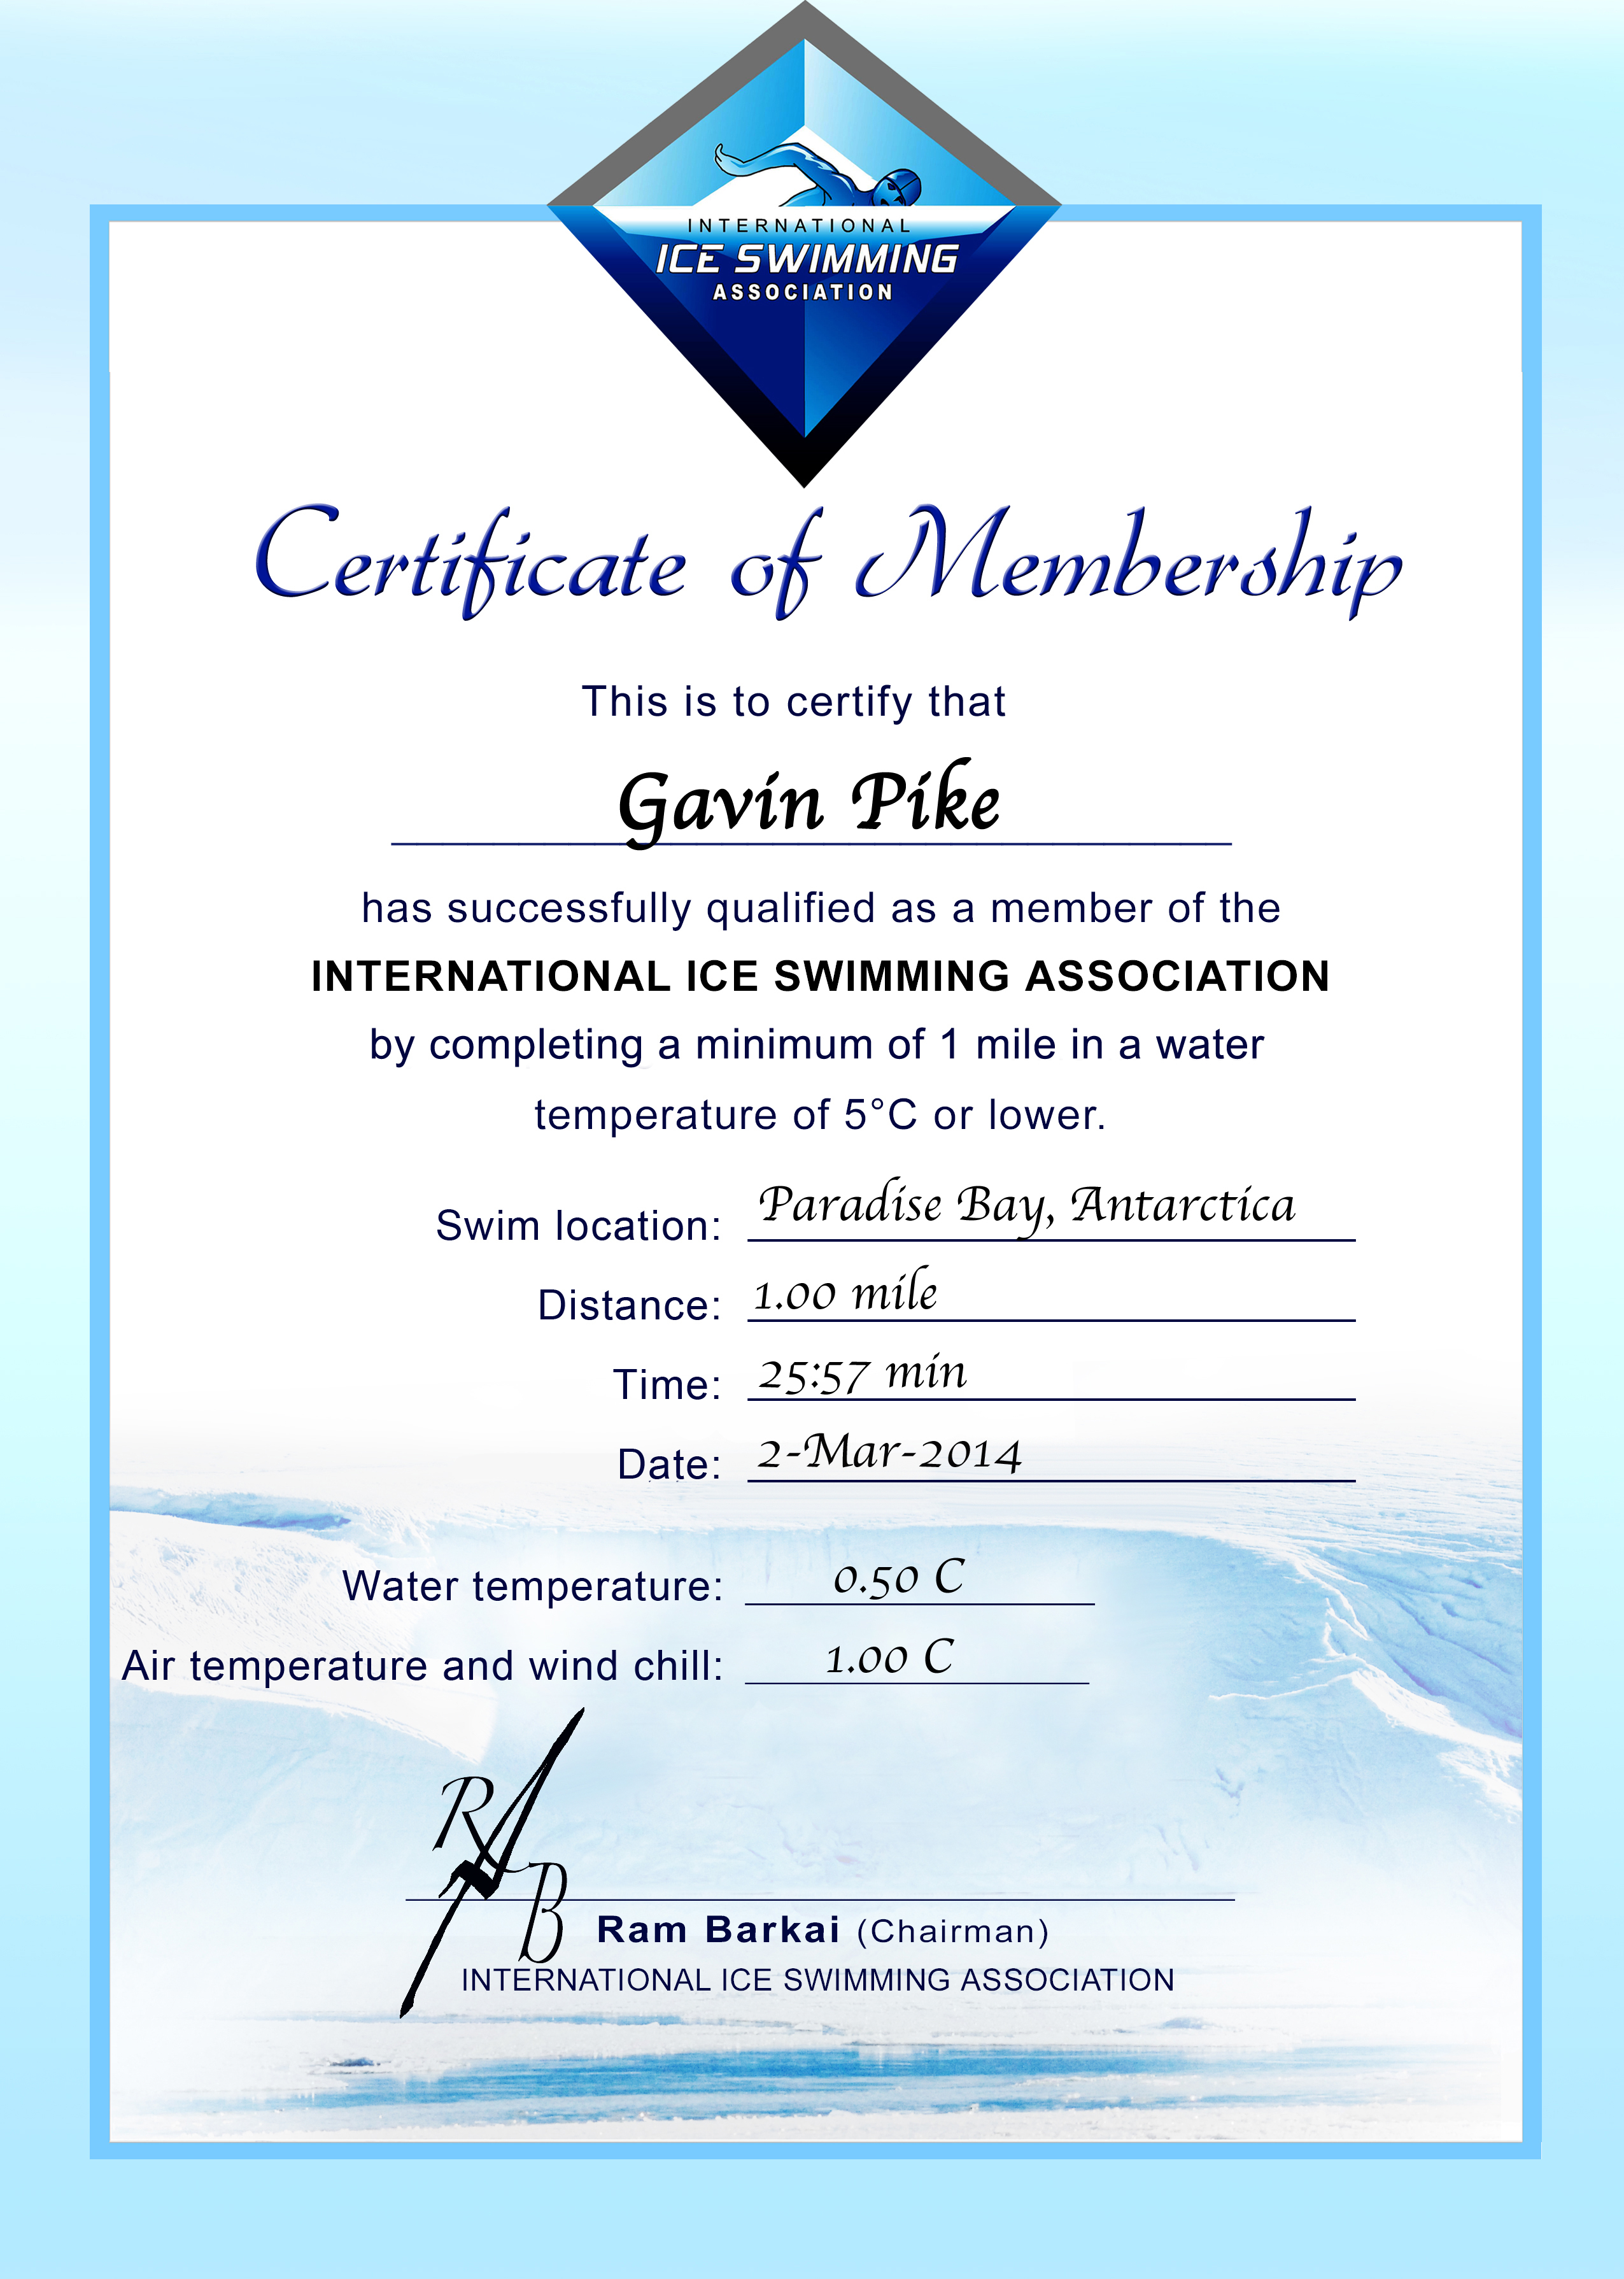 Ice Mile Certificate - Gavin Pike